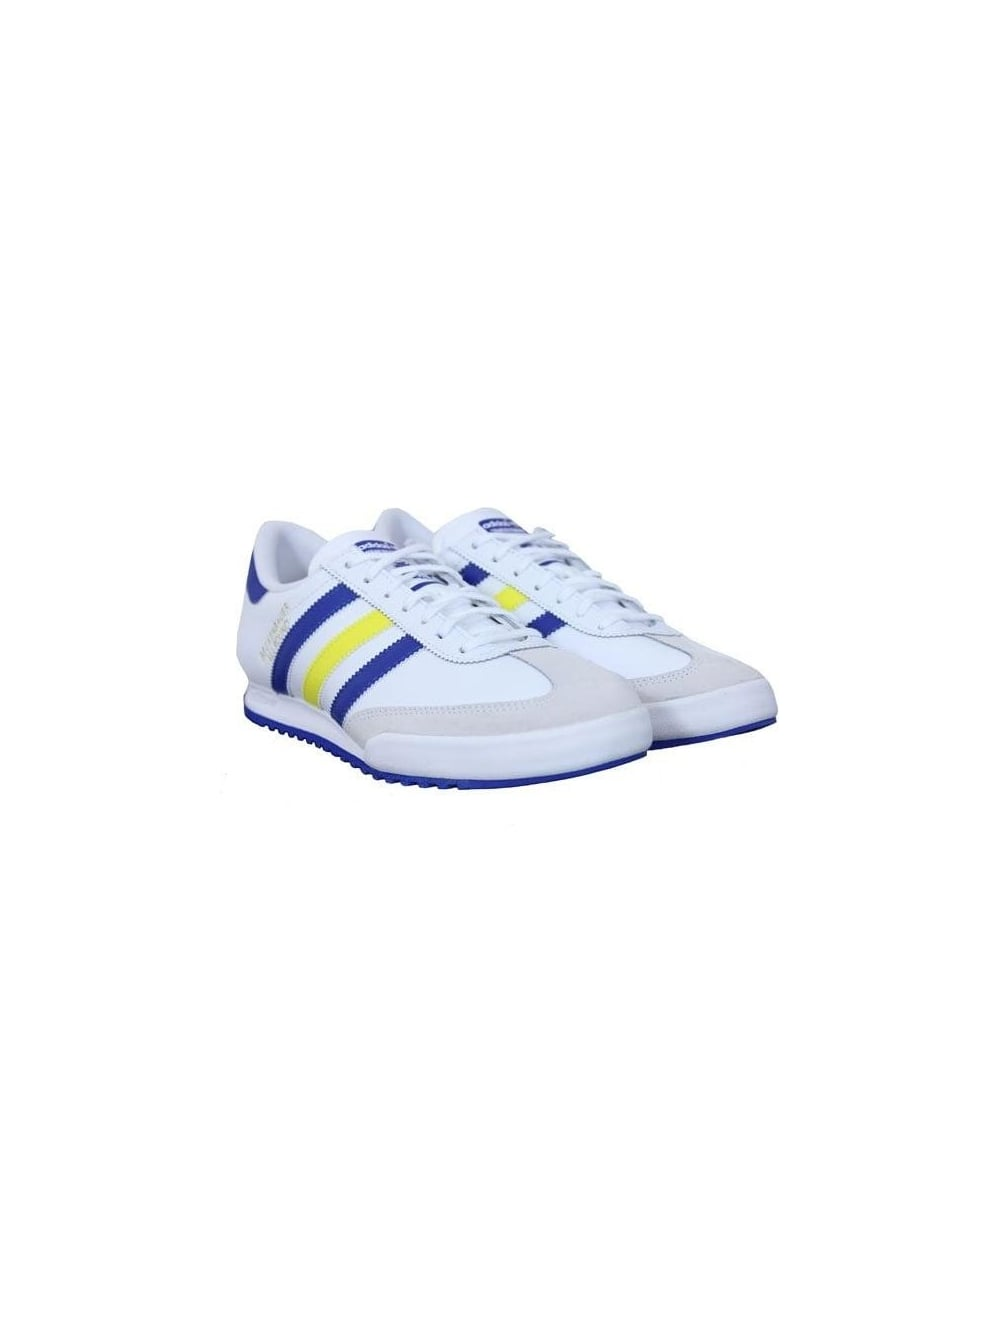 6c408c0f0a1f Adidas Originals Beckenbauer Trainers in white blue - Northern Threads